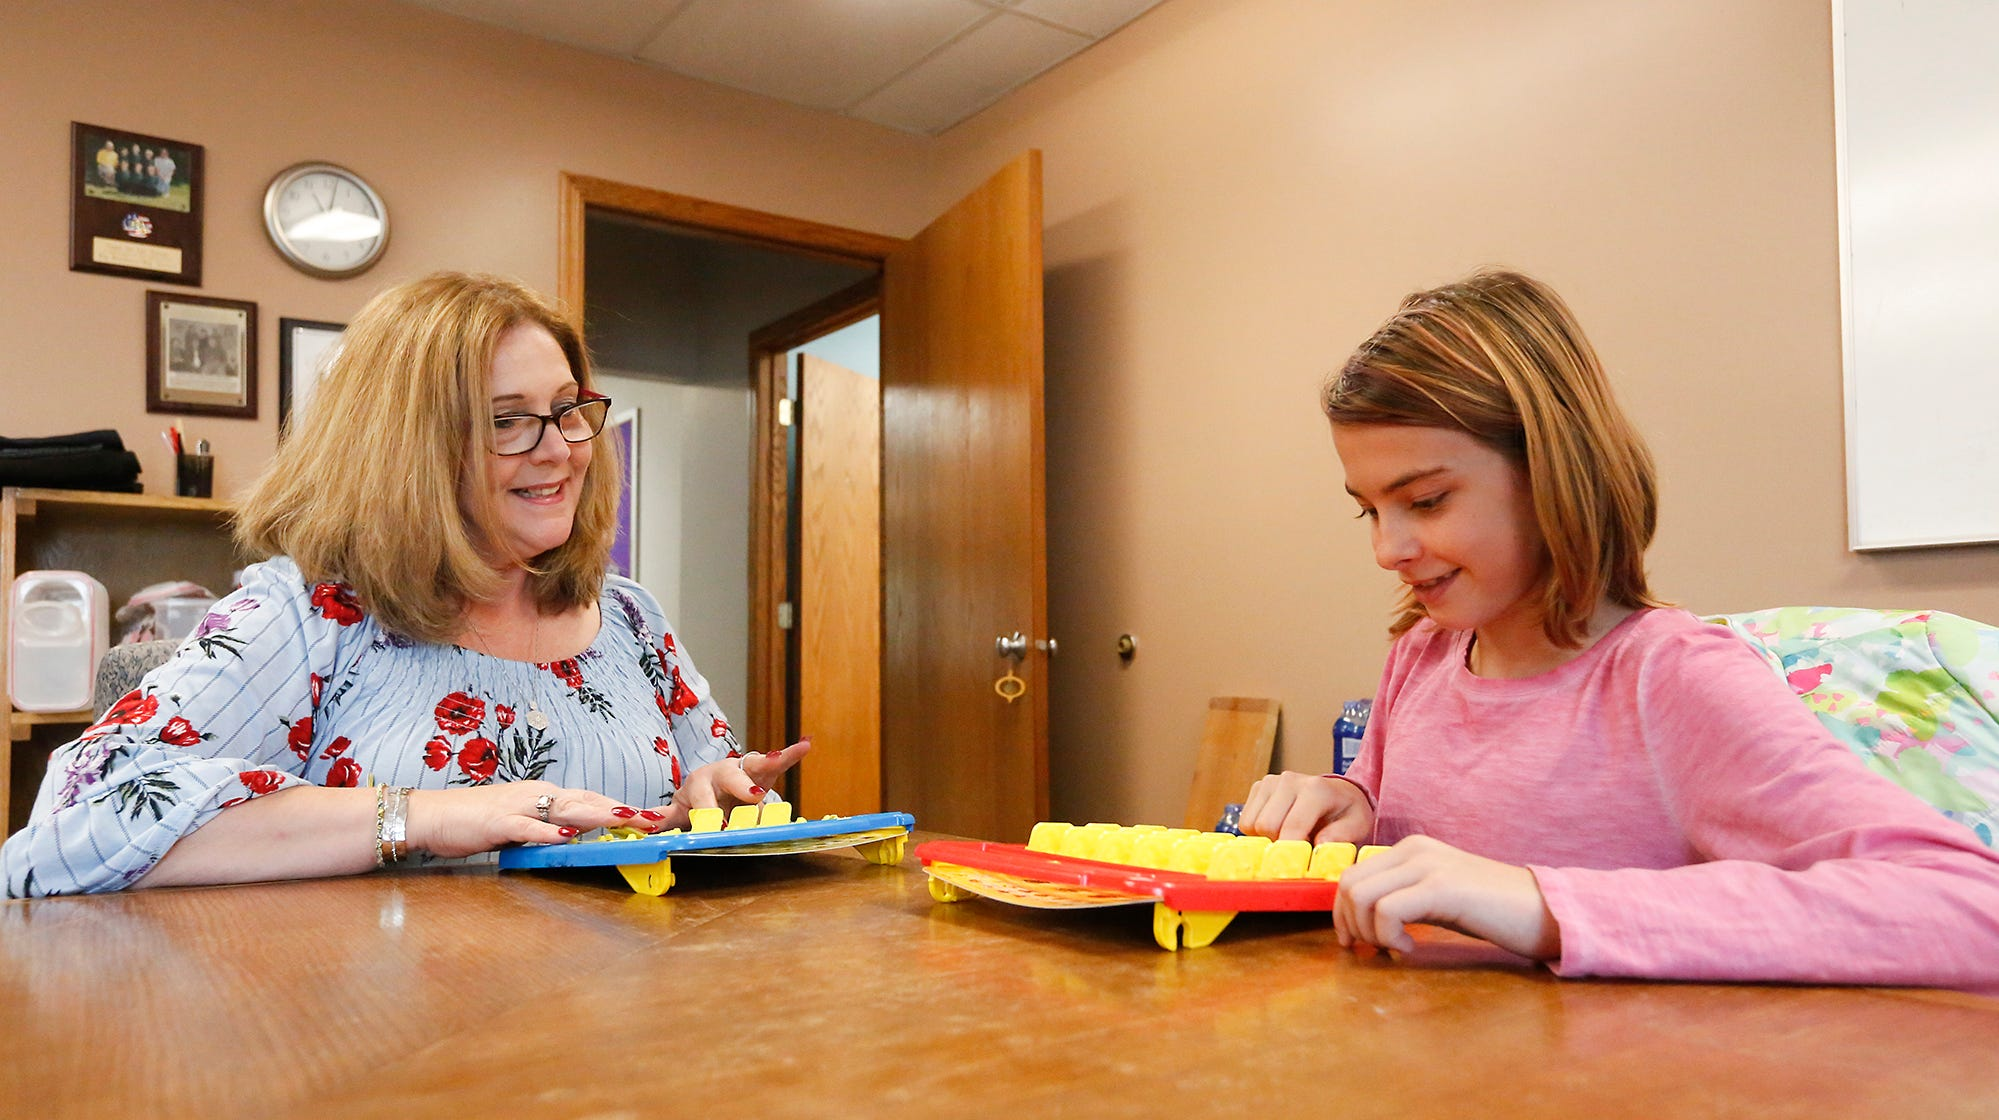 Joanne Schneider and Laila Nickerson of Fond du Lac play a game at the Big Brothers Big Sisters building in Fond du Lac.